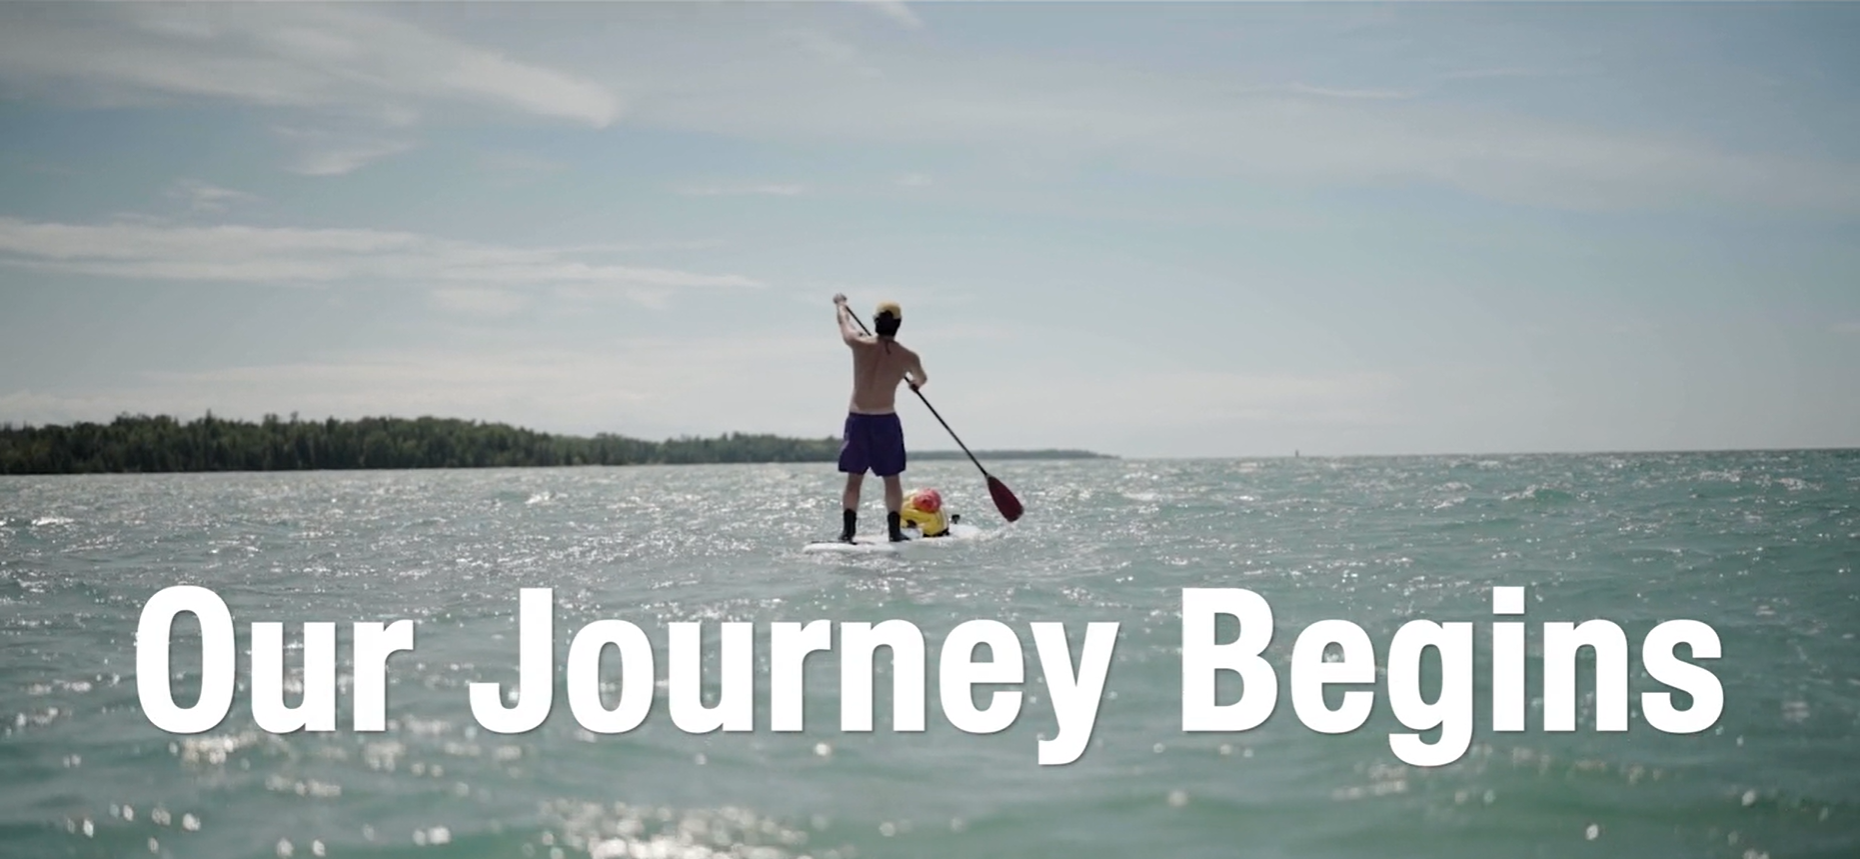 """Chris Yahanda, """"Troubled Waters"""" producer, paddle boards in Michigan"""